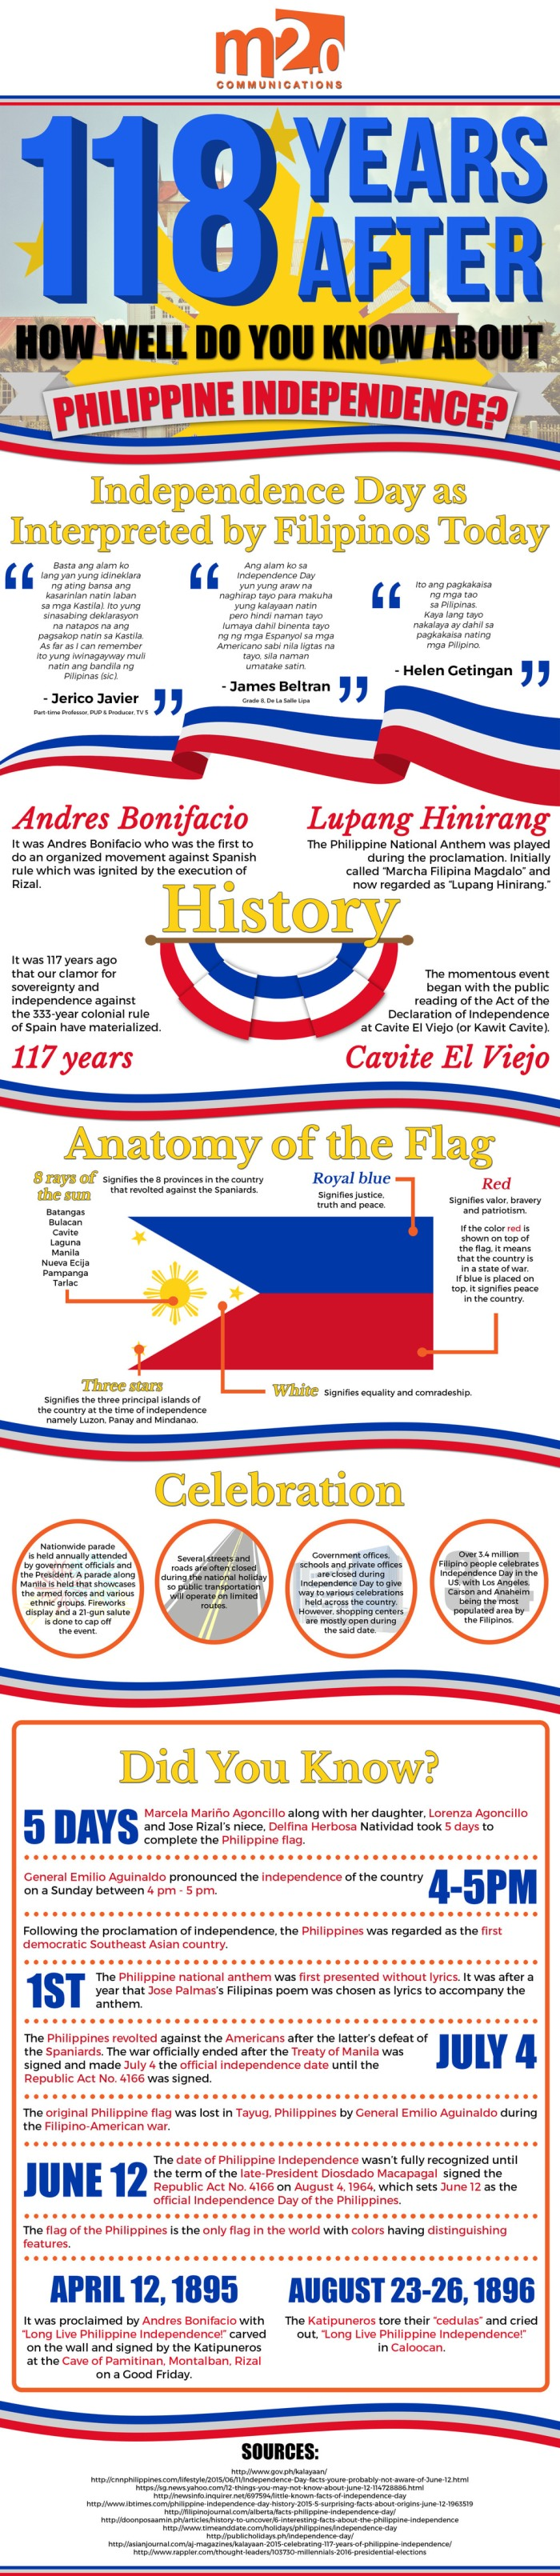 118 Years After: How Well Do You Know About Philippine Independence?